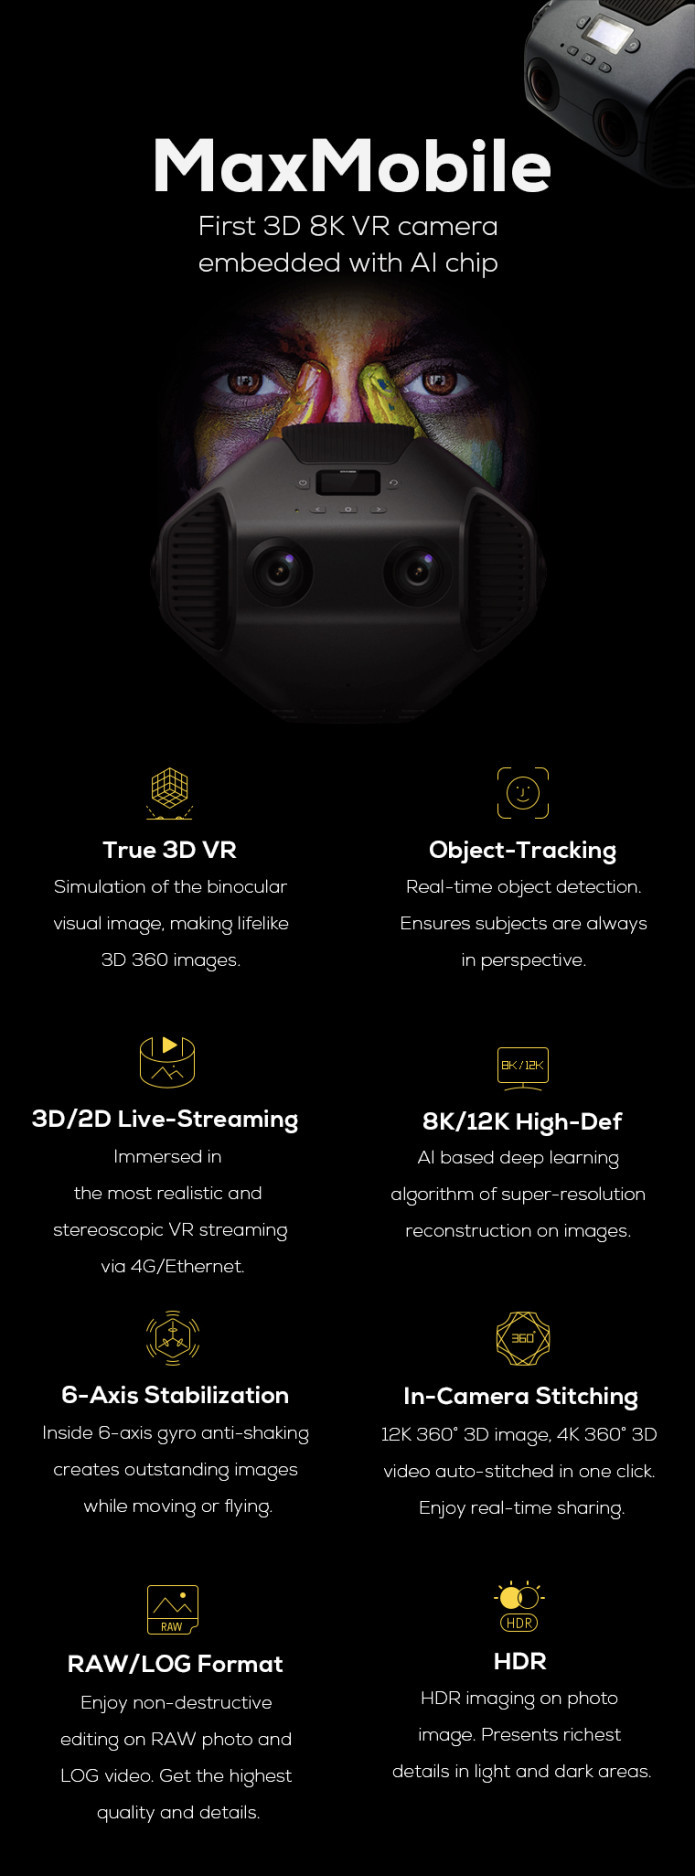 BackIt com - Detu MaxMobile: First 3D 8K 360 VR Camera With AI